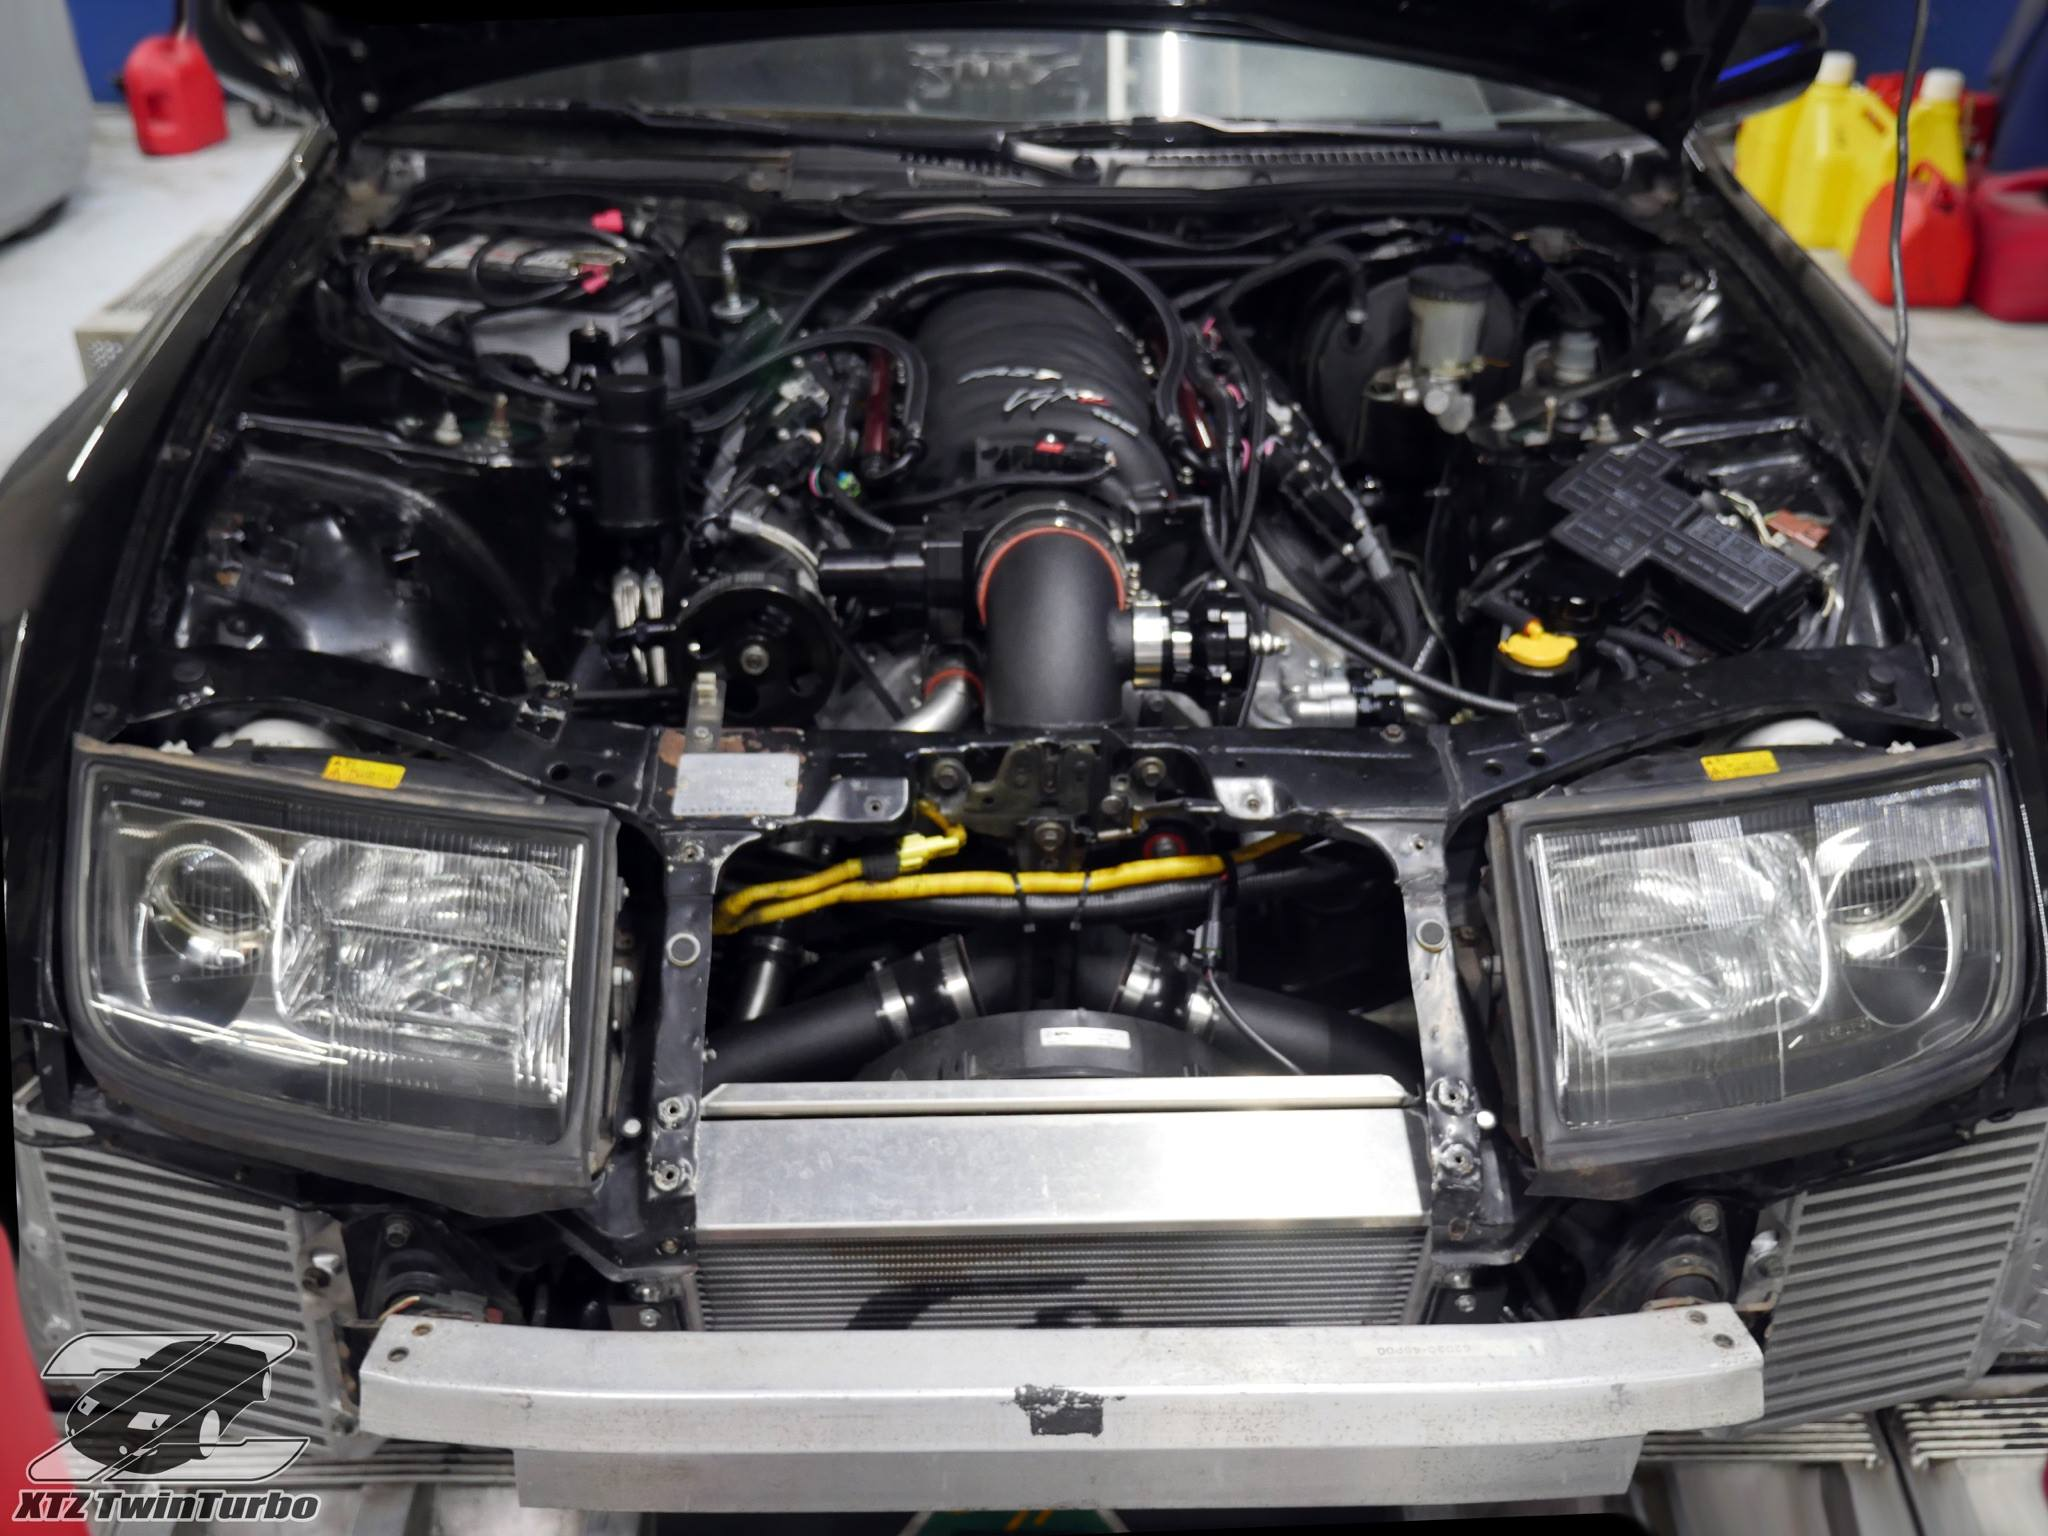 After the 3.0 L VG30DETT V6 went bad, the owner decided to go in a different direction. They built and installed a 6.2 L LS3 V8 using a LOJ Innovations swap ...